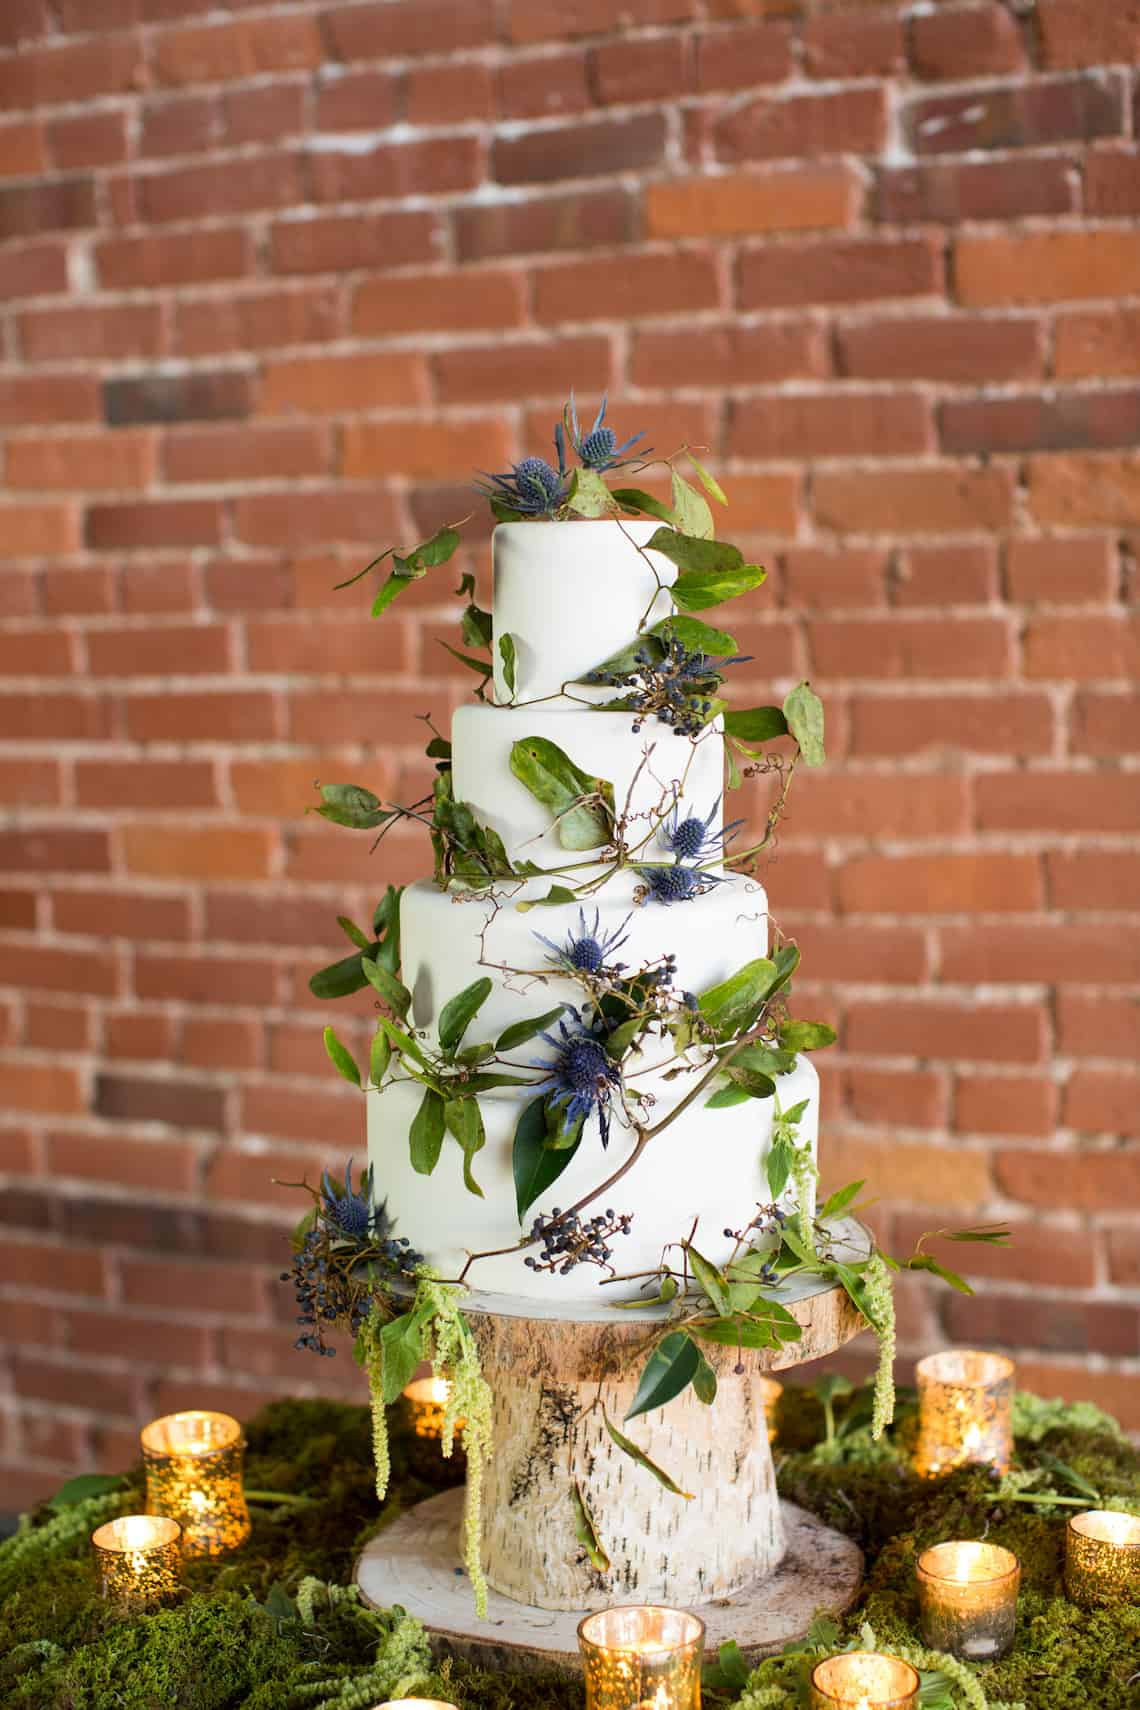 White Wedding Cake with Greenery Accents and Gold Candles